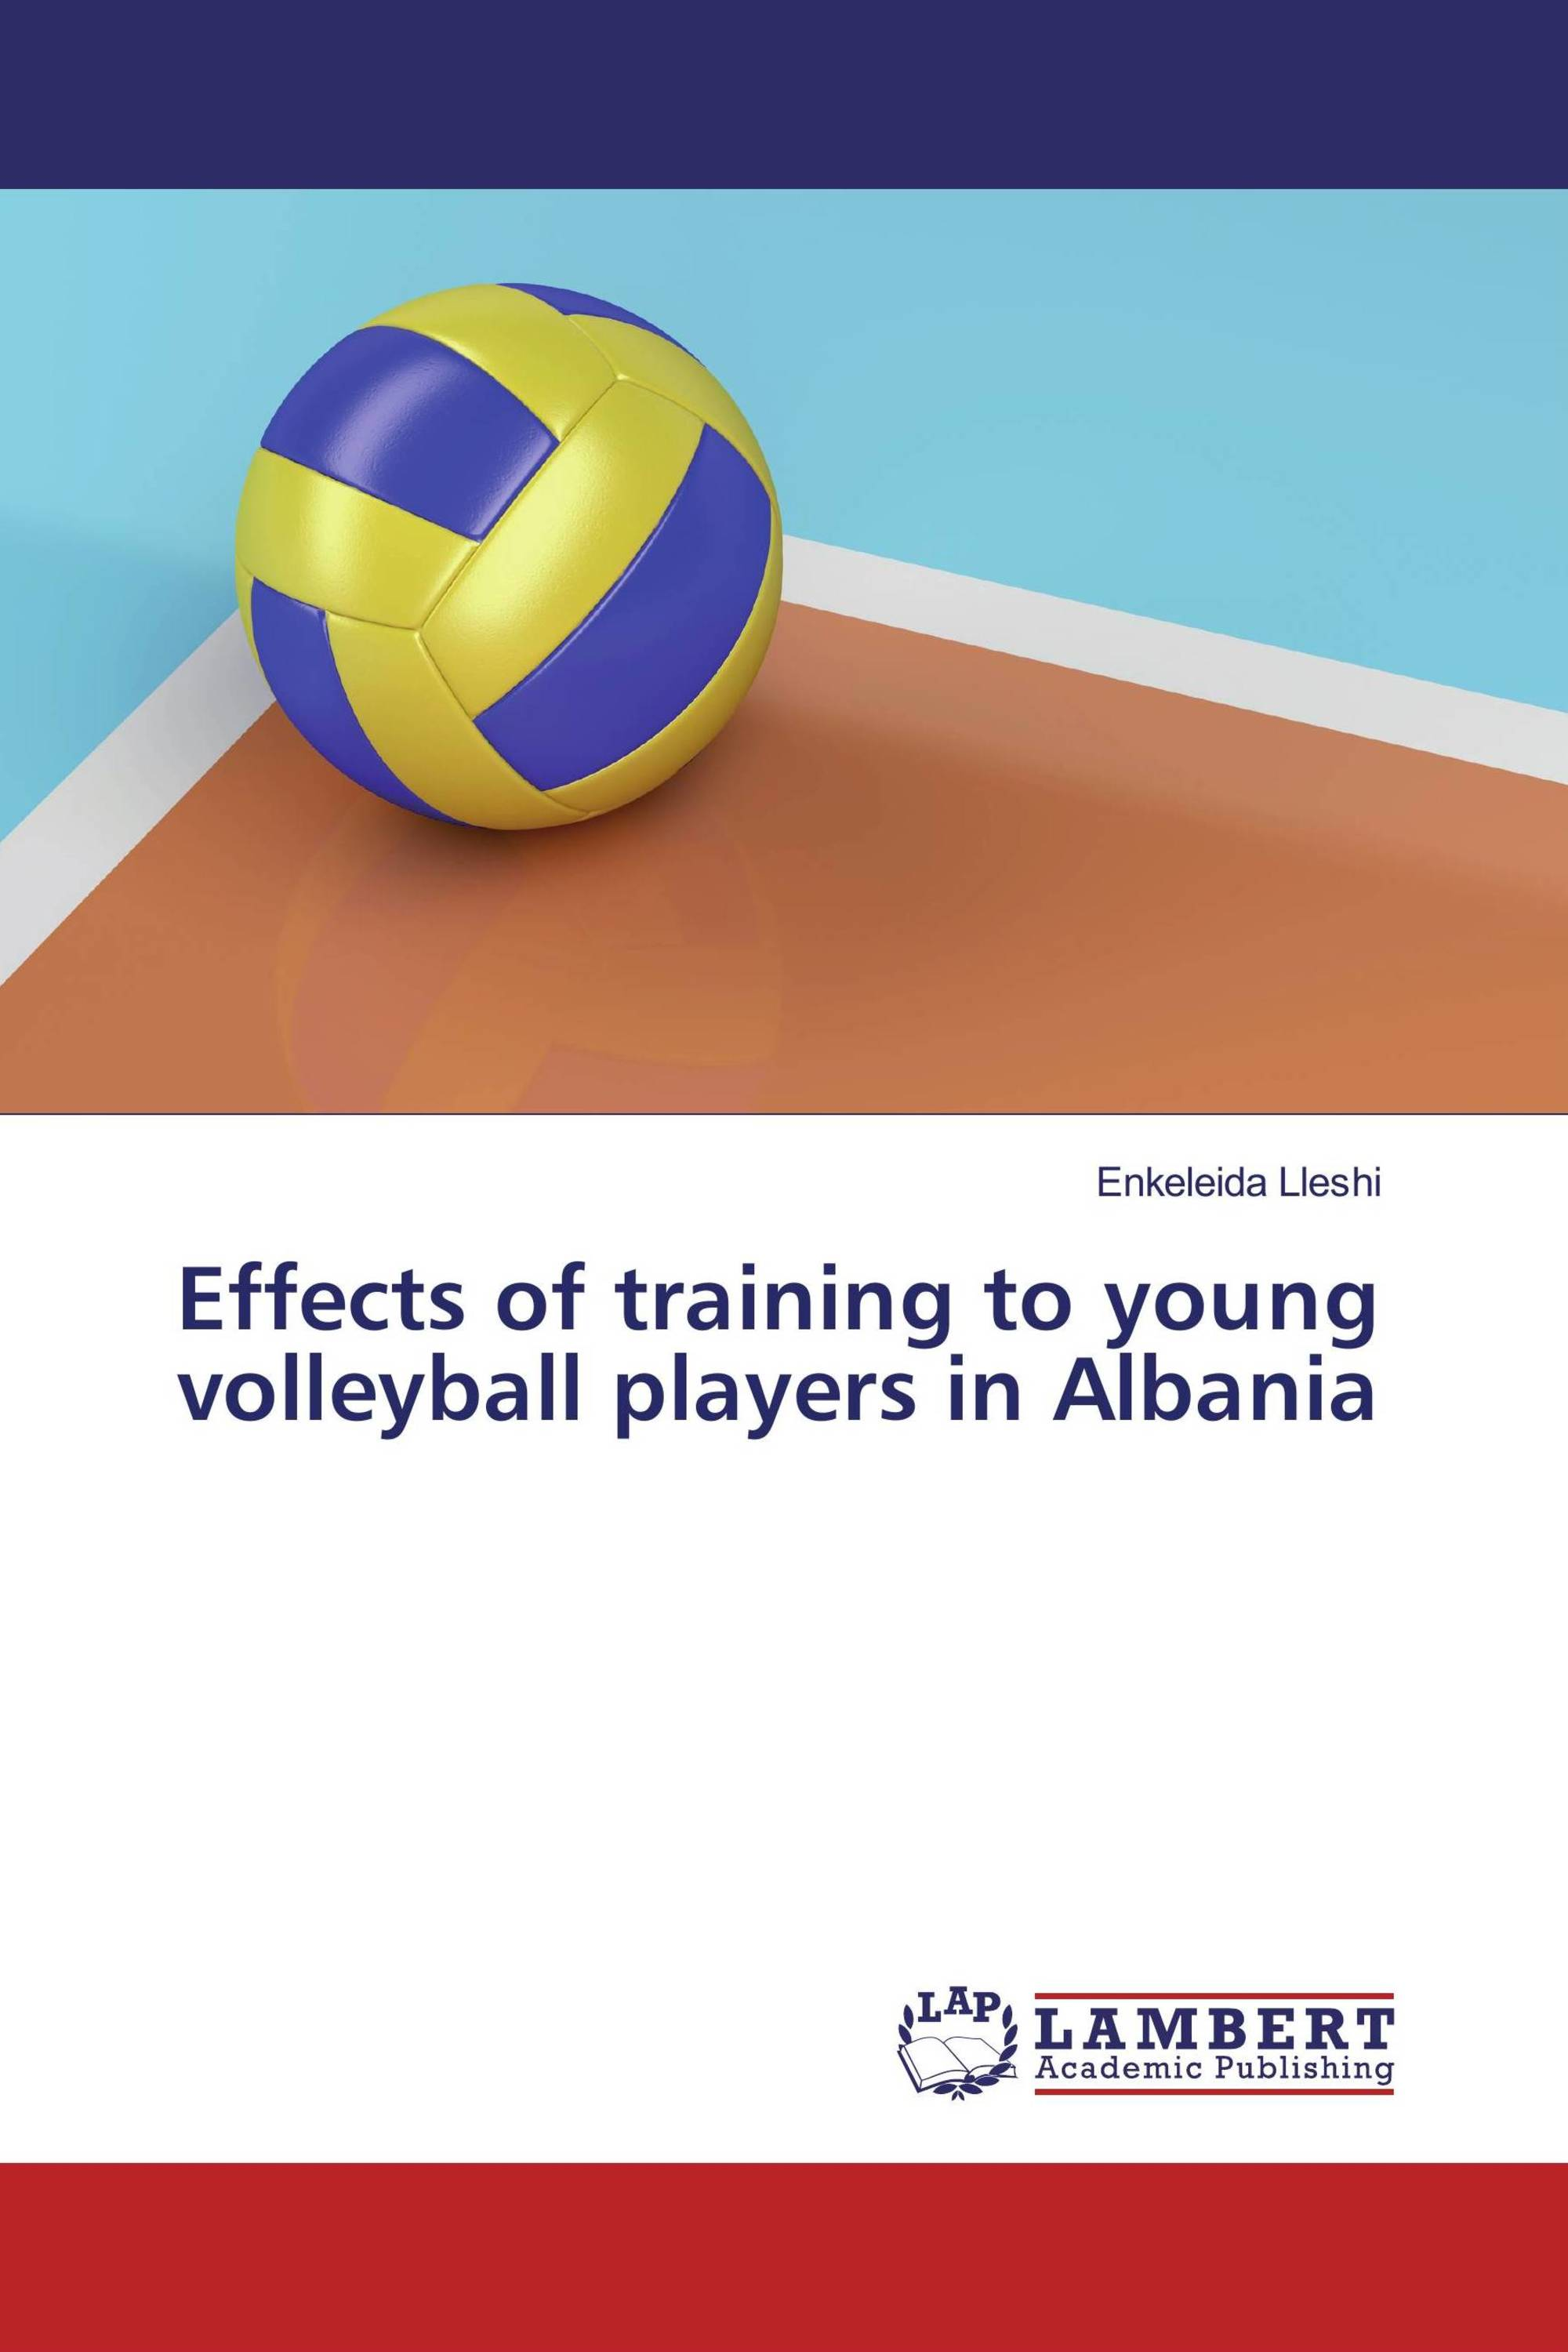 Effects of training to young volleyball players in Albania